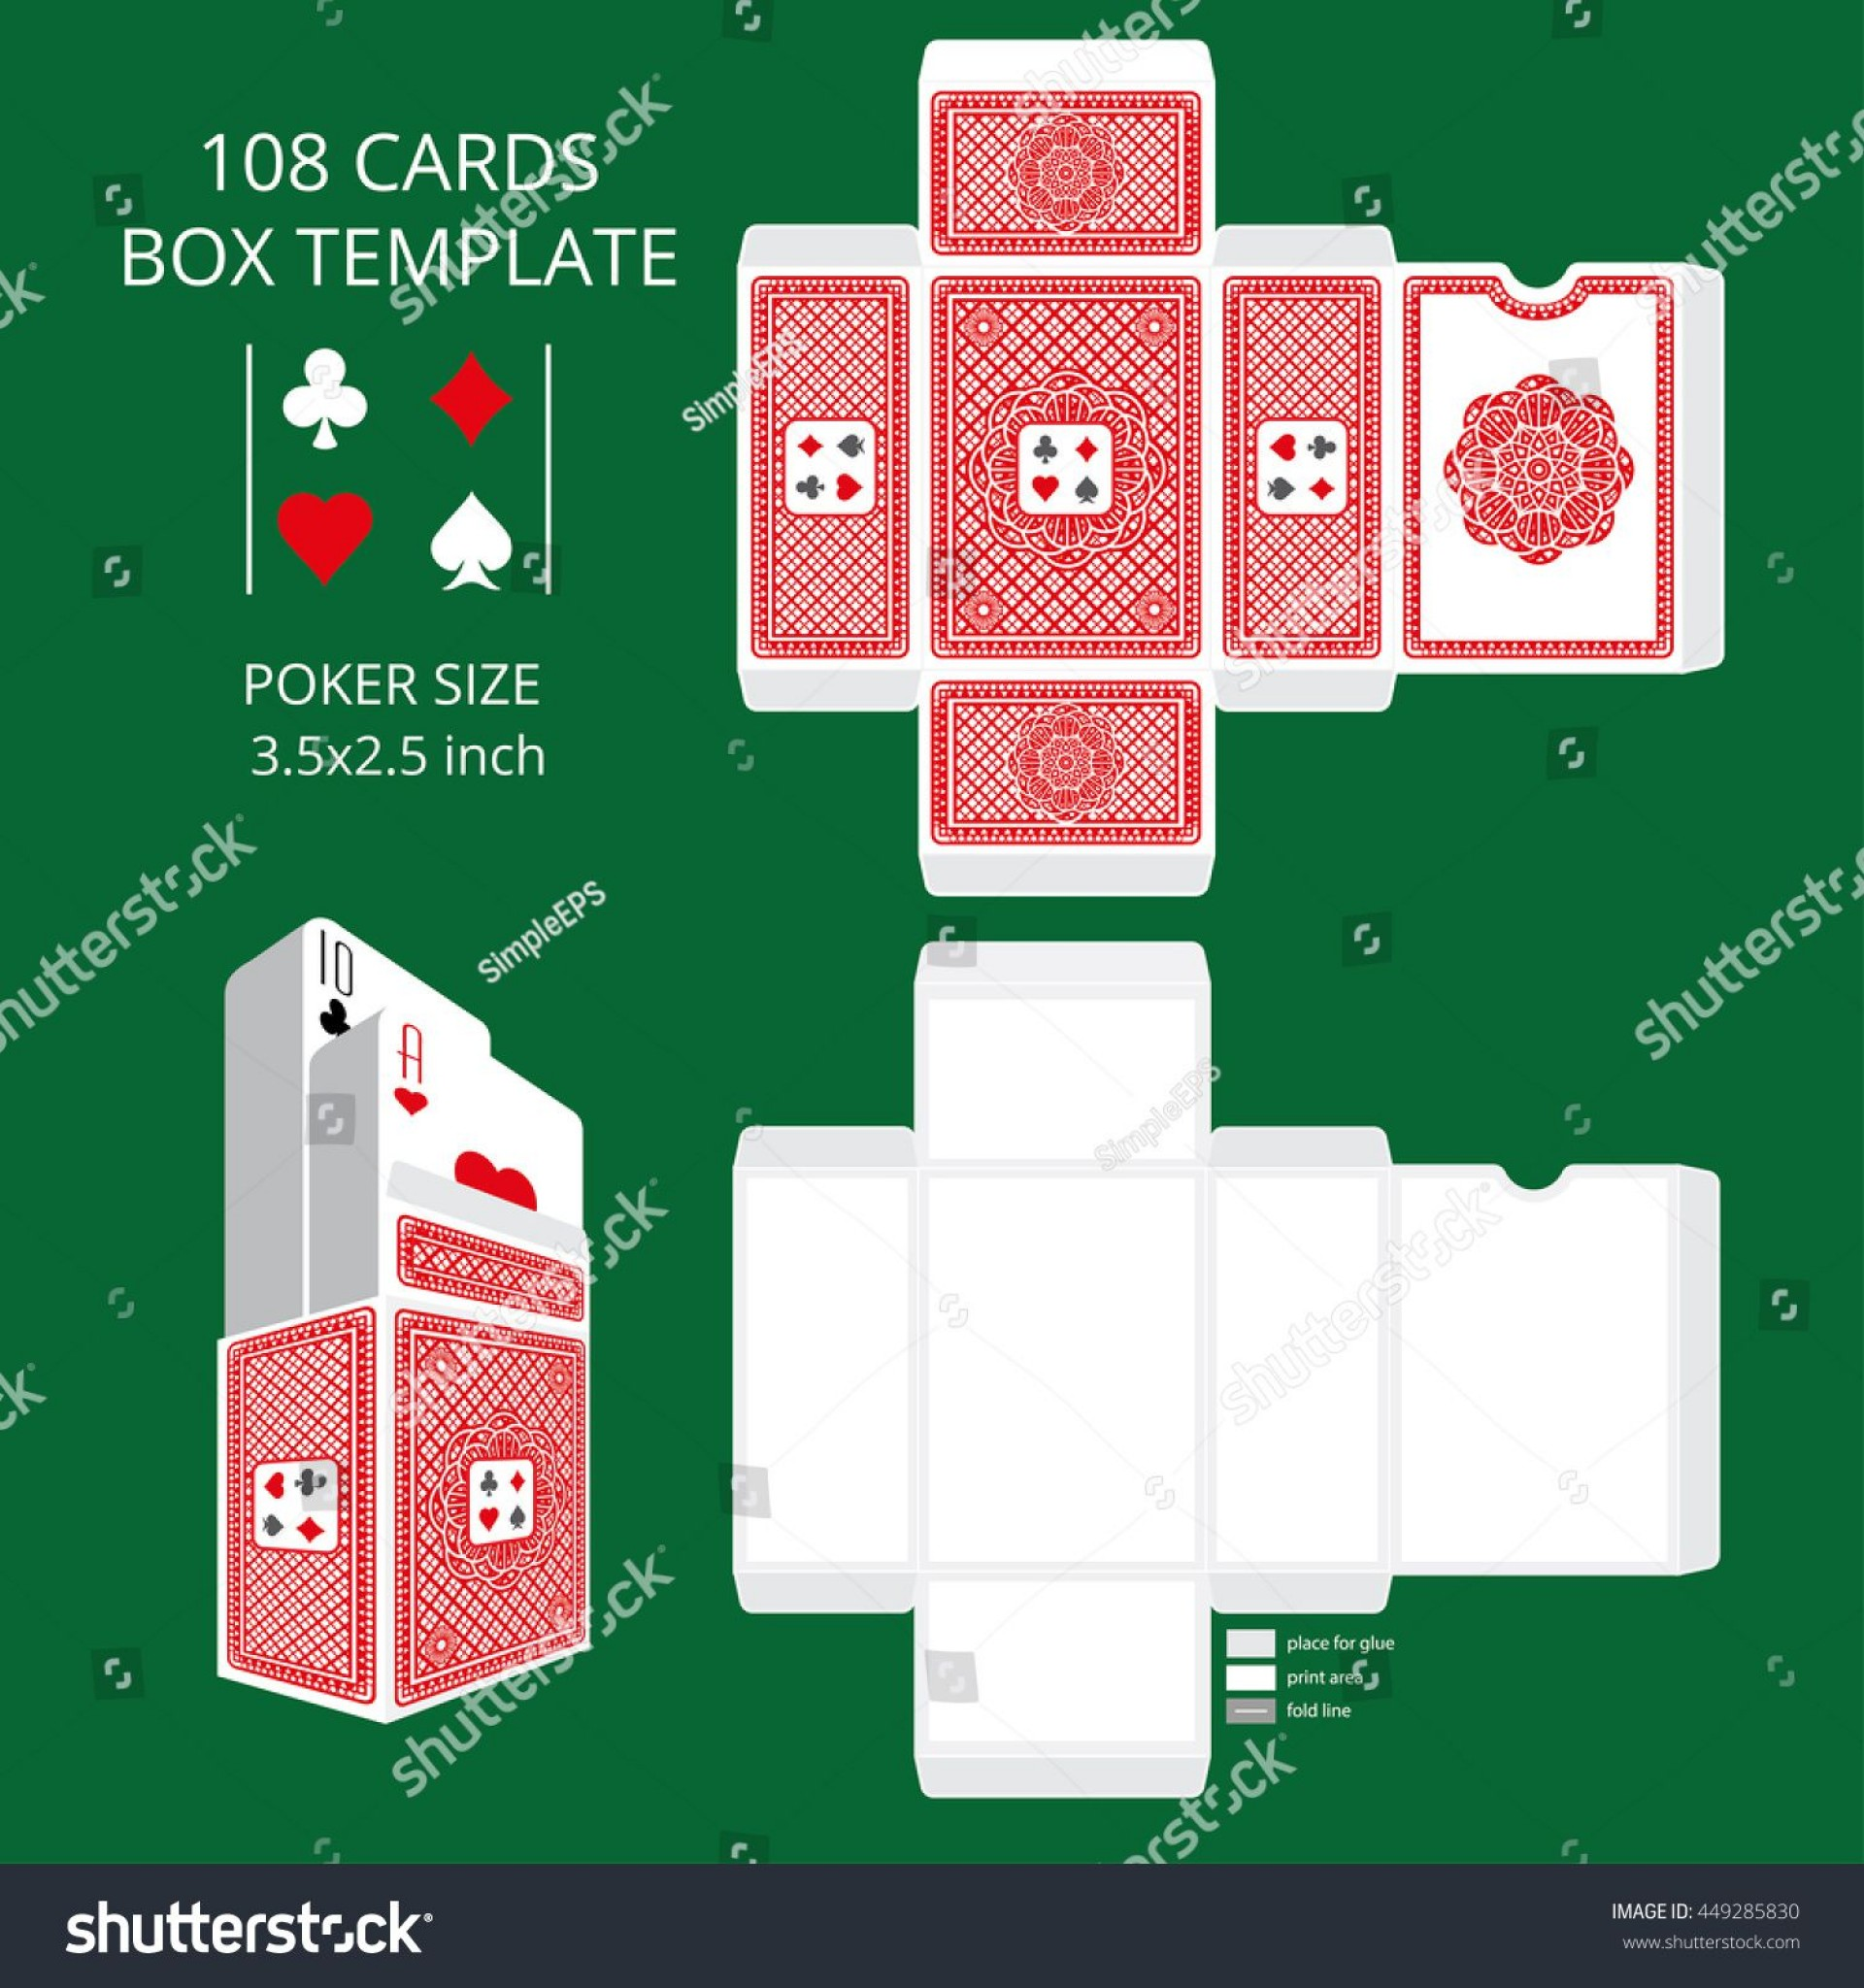 007 Fascinating Playing Card Size Template High Definition  Standard Poker1920